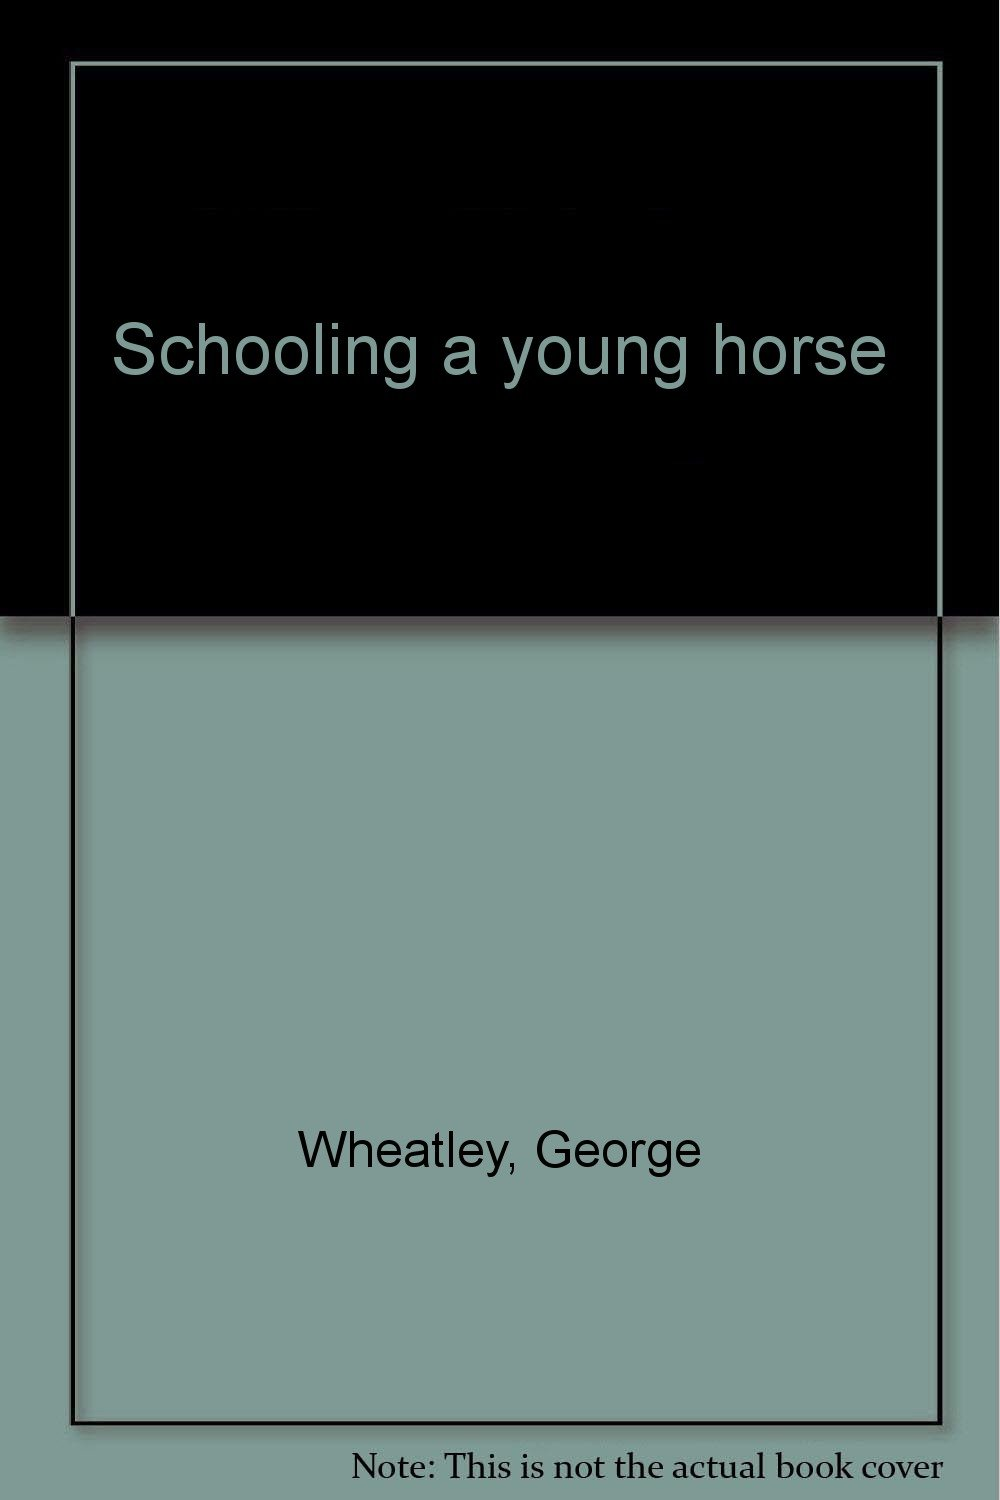 Schooling a young horse